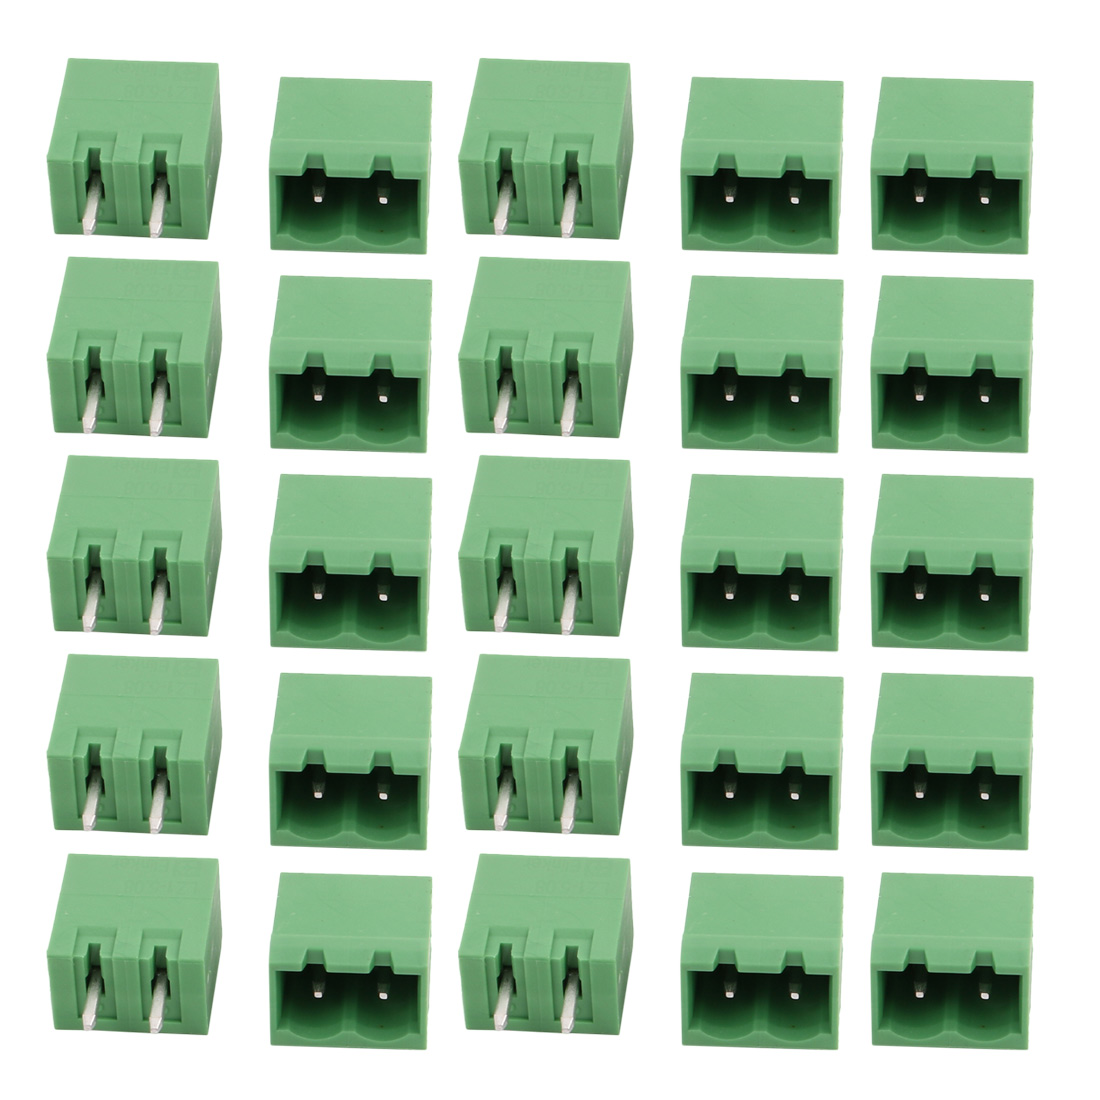 25Pcs LZ1V 5.08mm Pitch 2P PCB Mounting Terminal Block Wire Connector